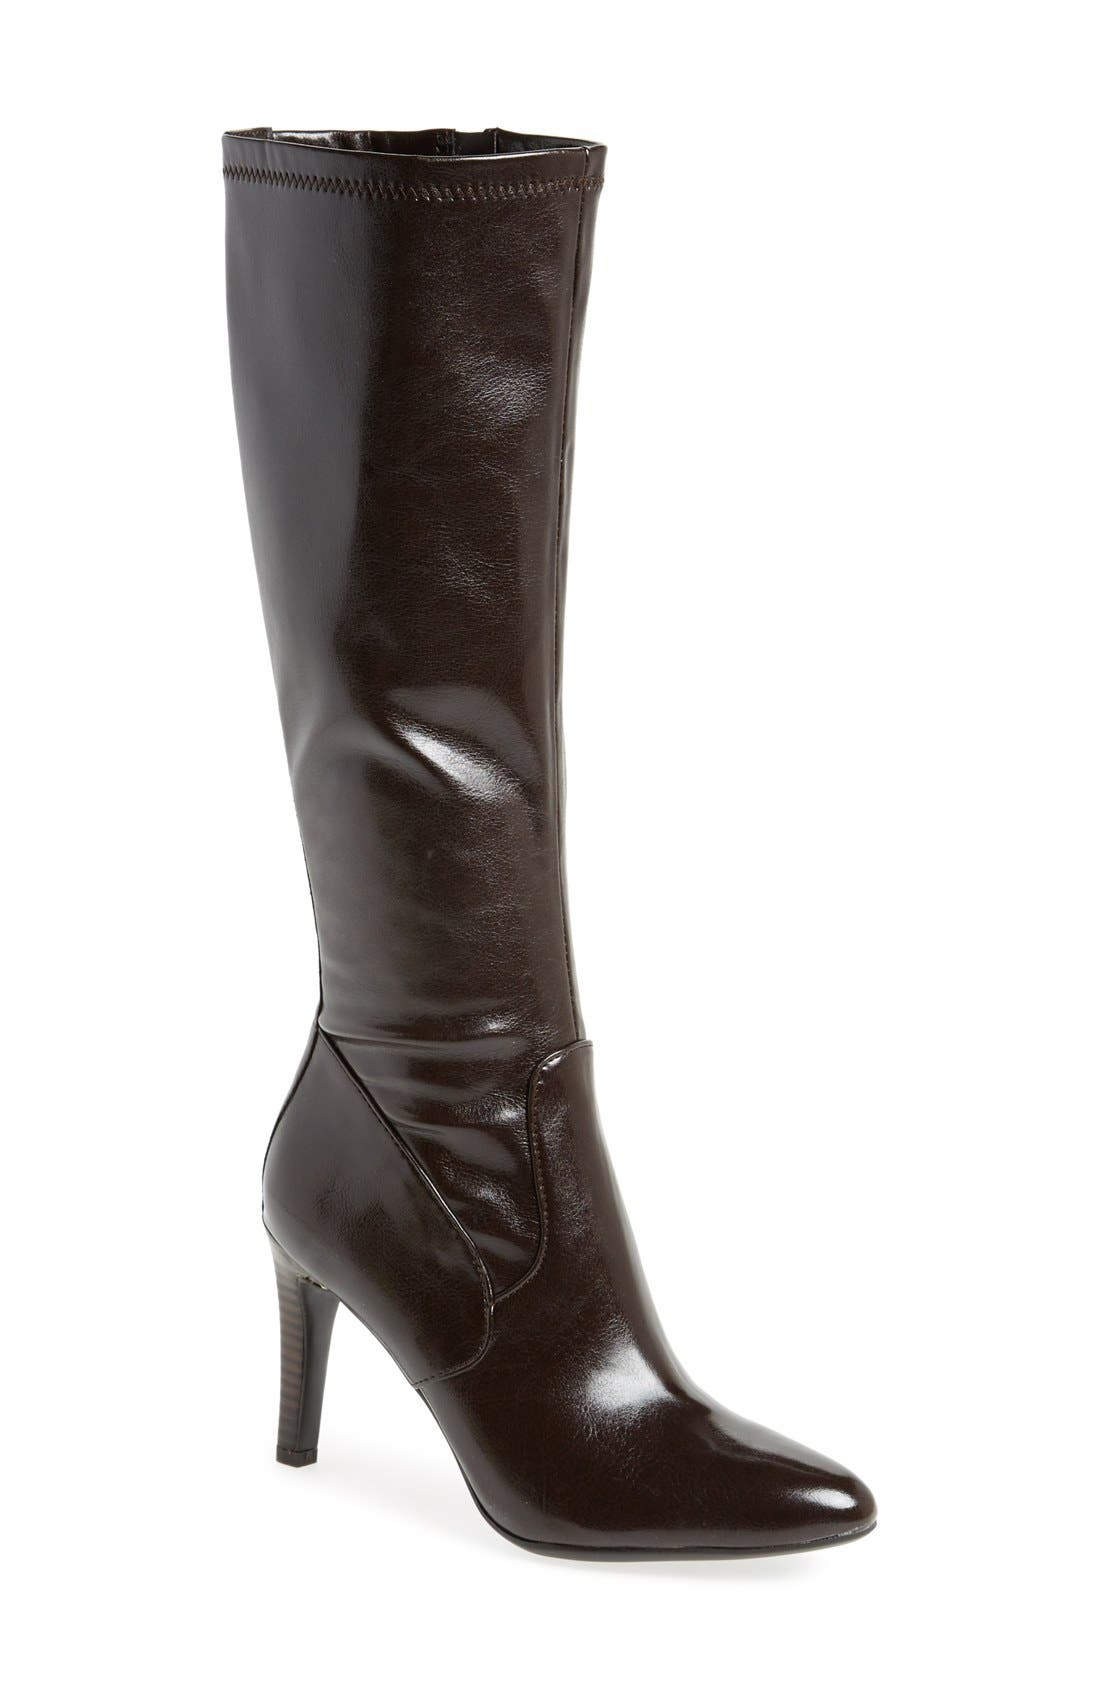 Alternate Image 1 Selected - Franco Sarto 'Coralla' Tall Boot (Women)